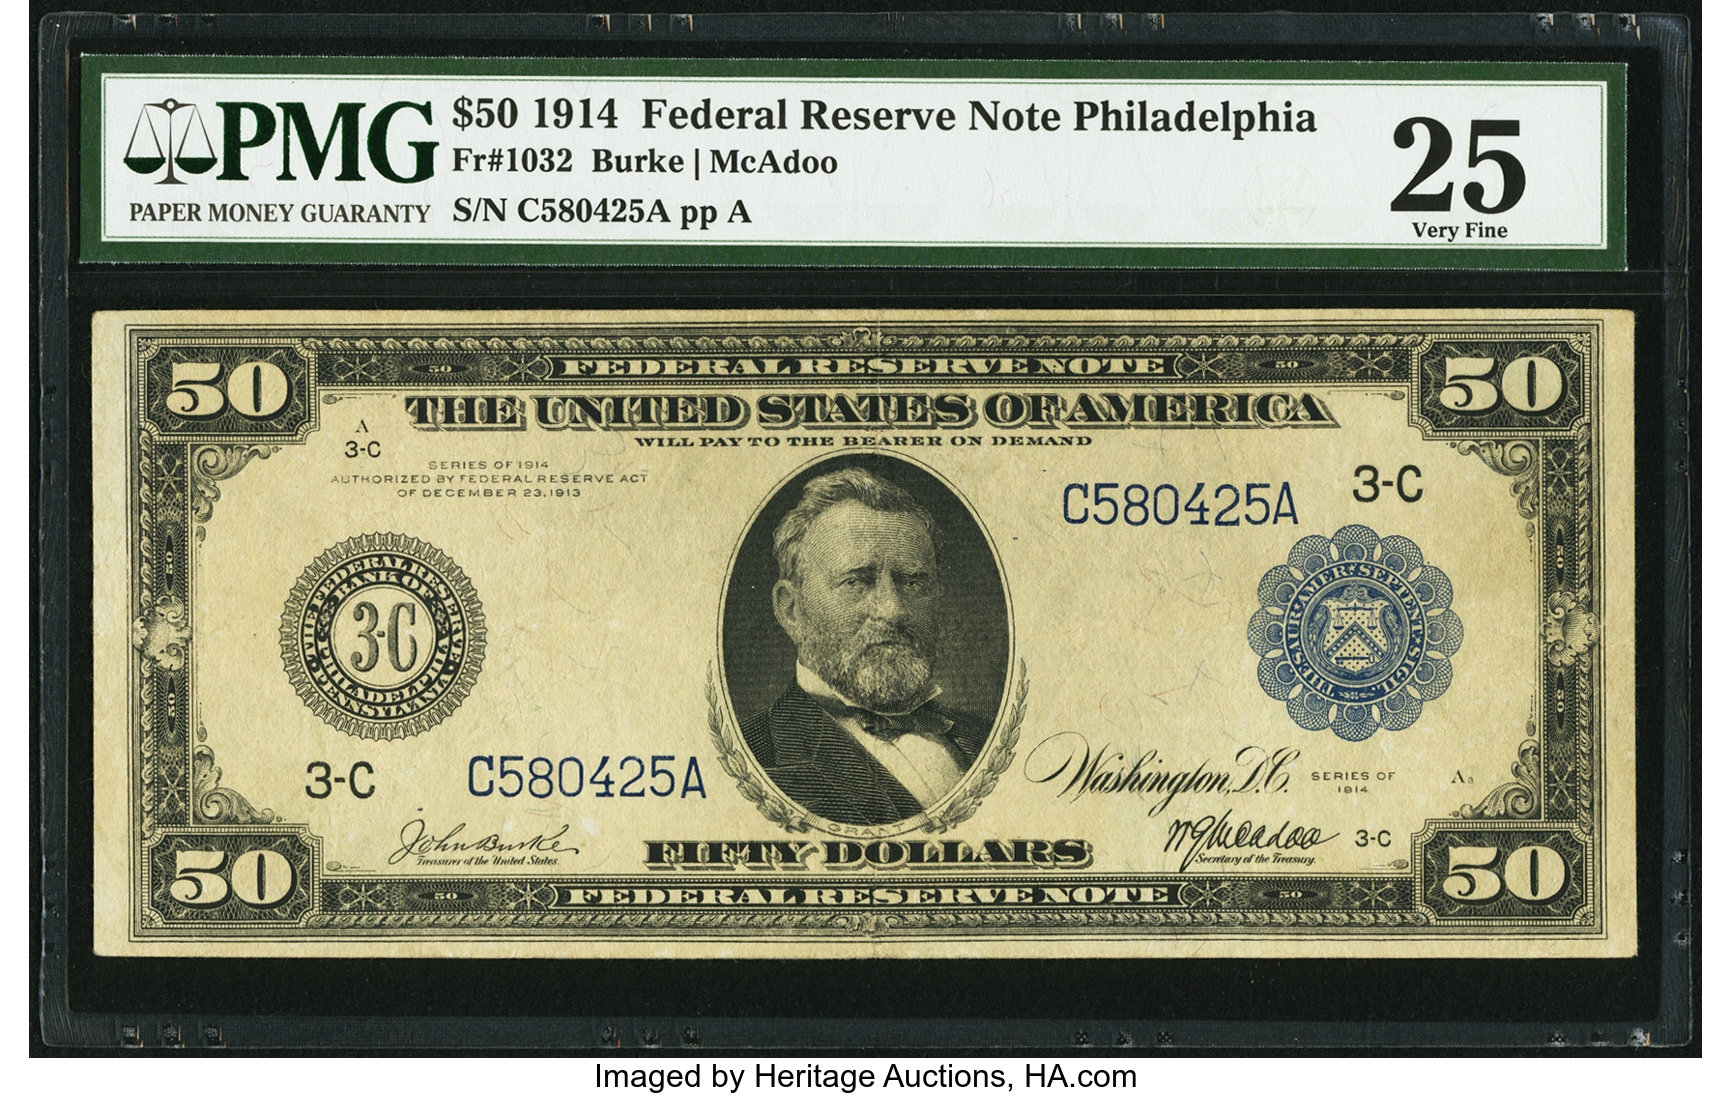 sample image for Fr.1032 $50 Philly